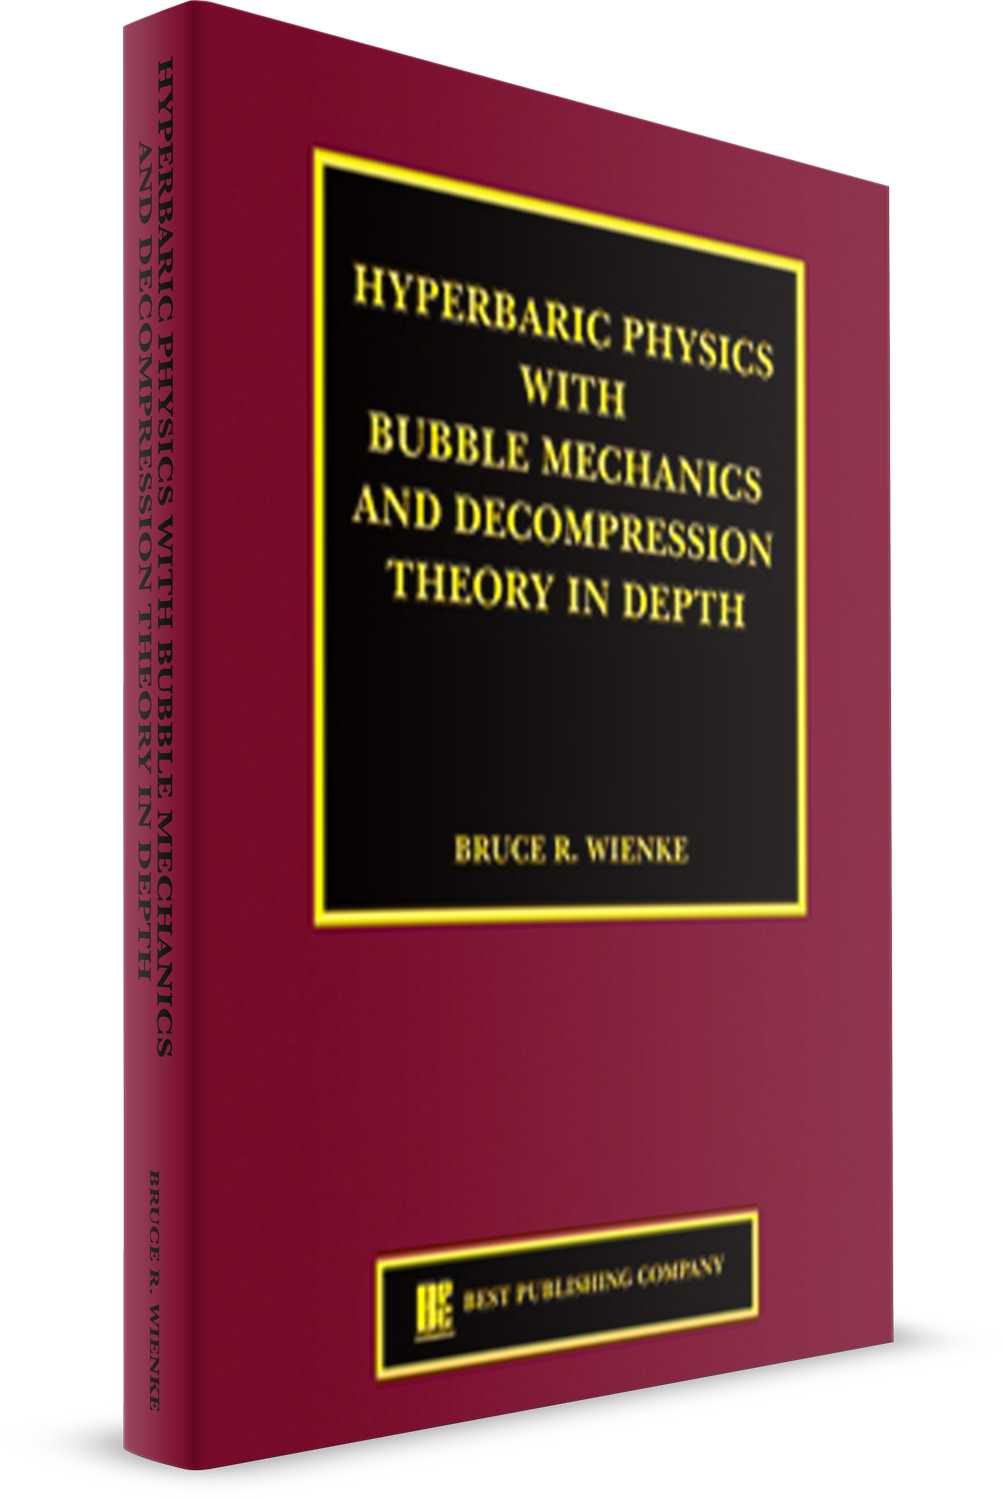 Hyperbaric Physics